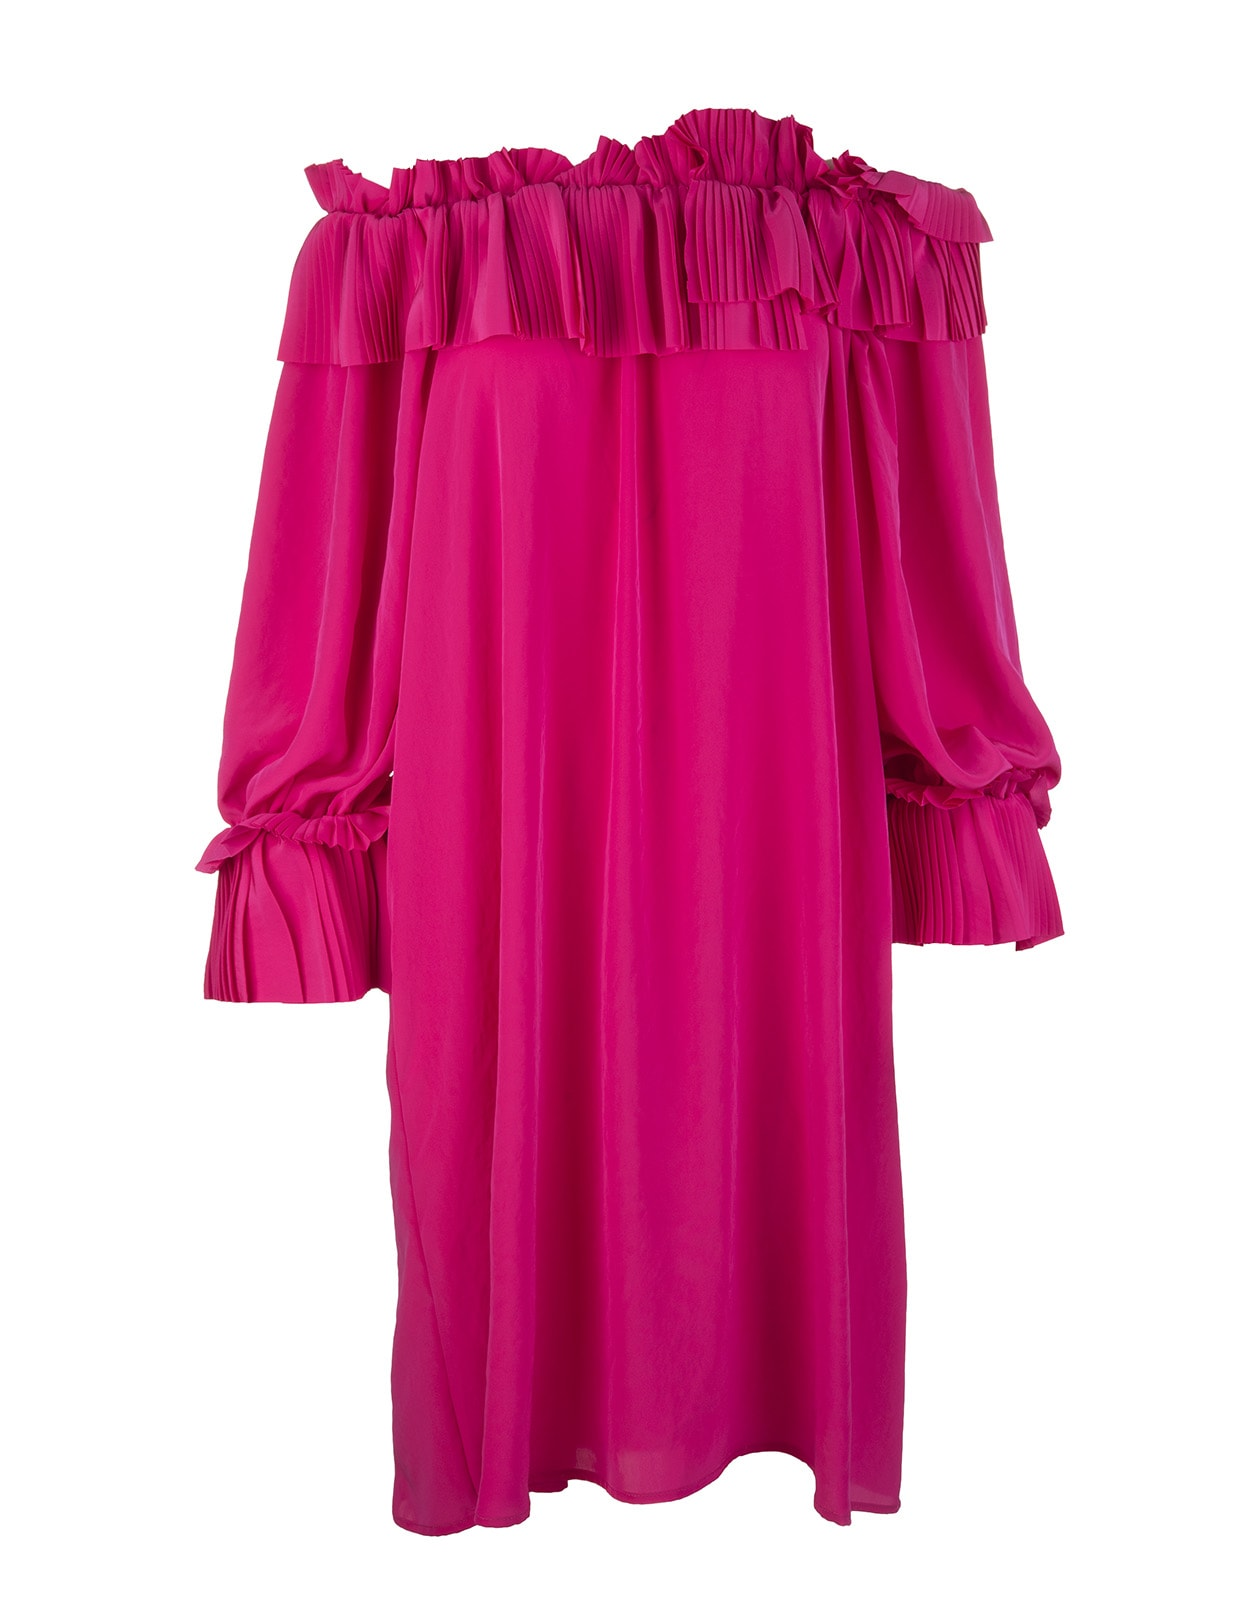 Fuchsia short dress by A.R.O.H. with uncovered shoulders, pleated ruffle neckline and long soft sleeves with cuffs embellished with pleated ruffles. Soft fit. Composition: 100% Polyester